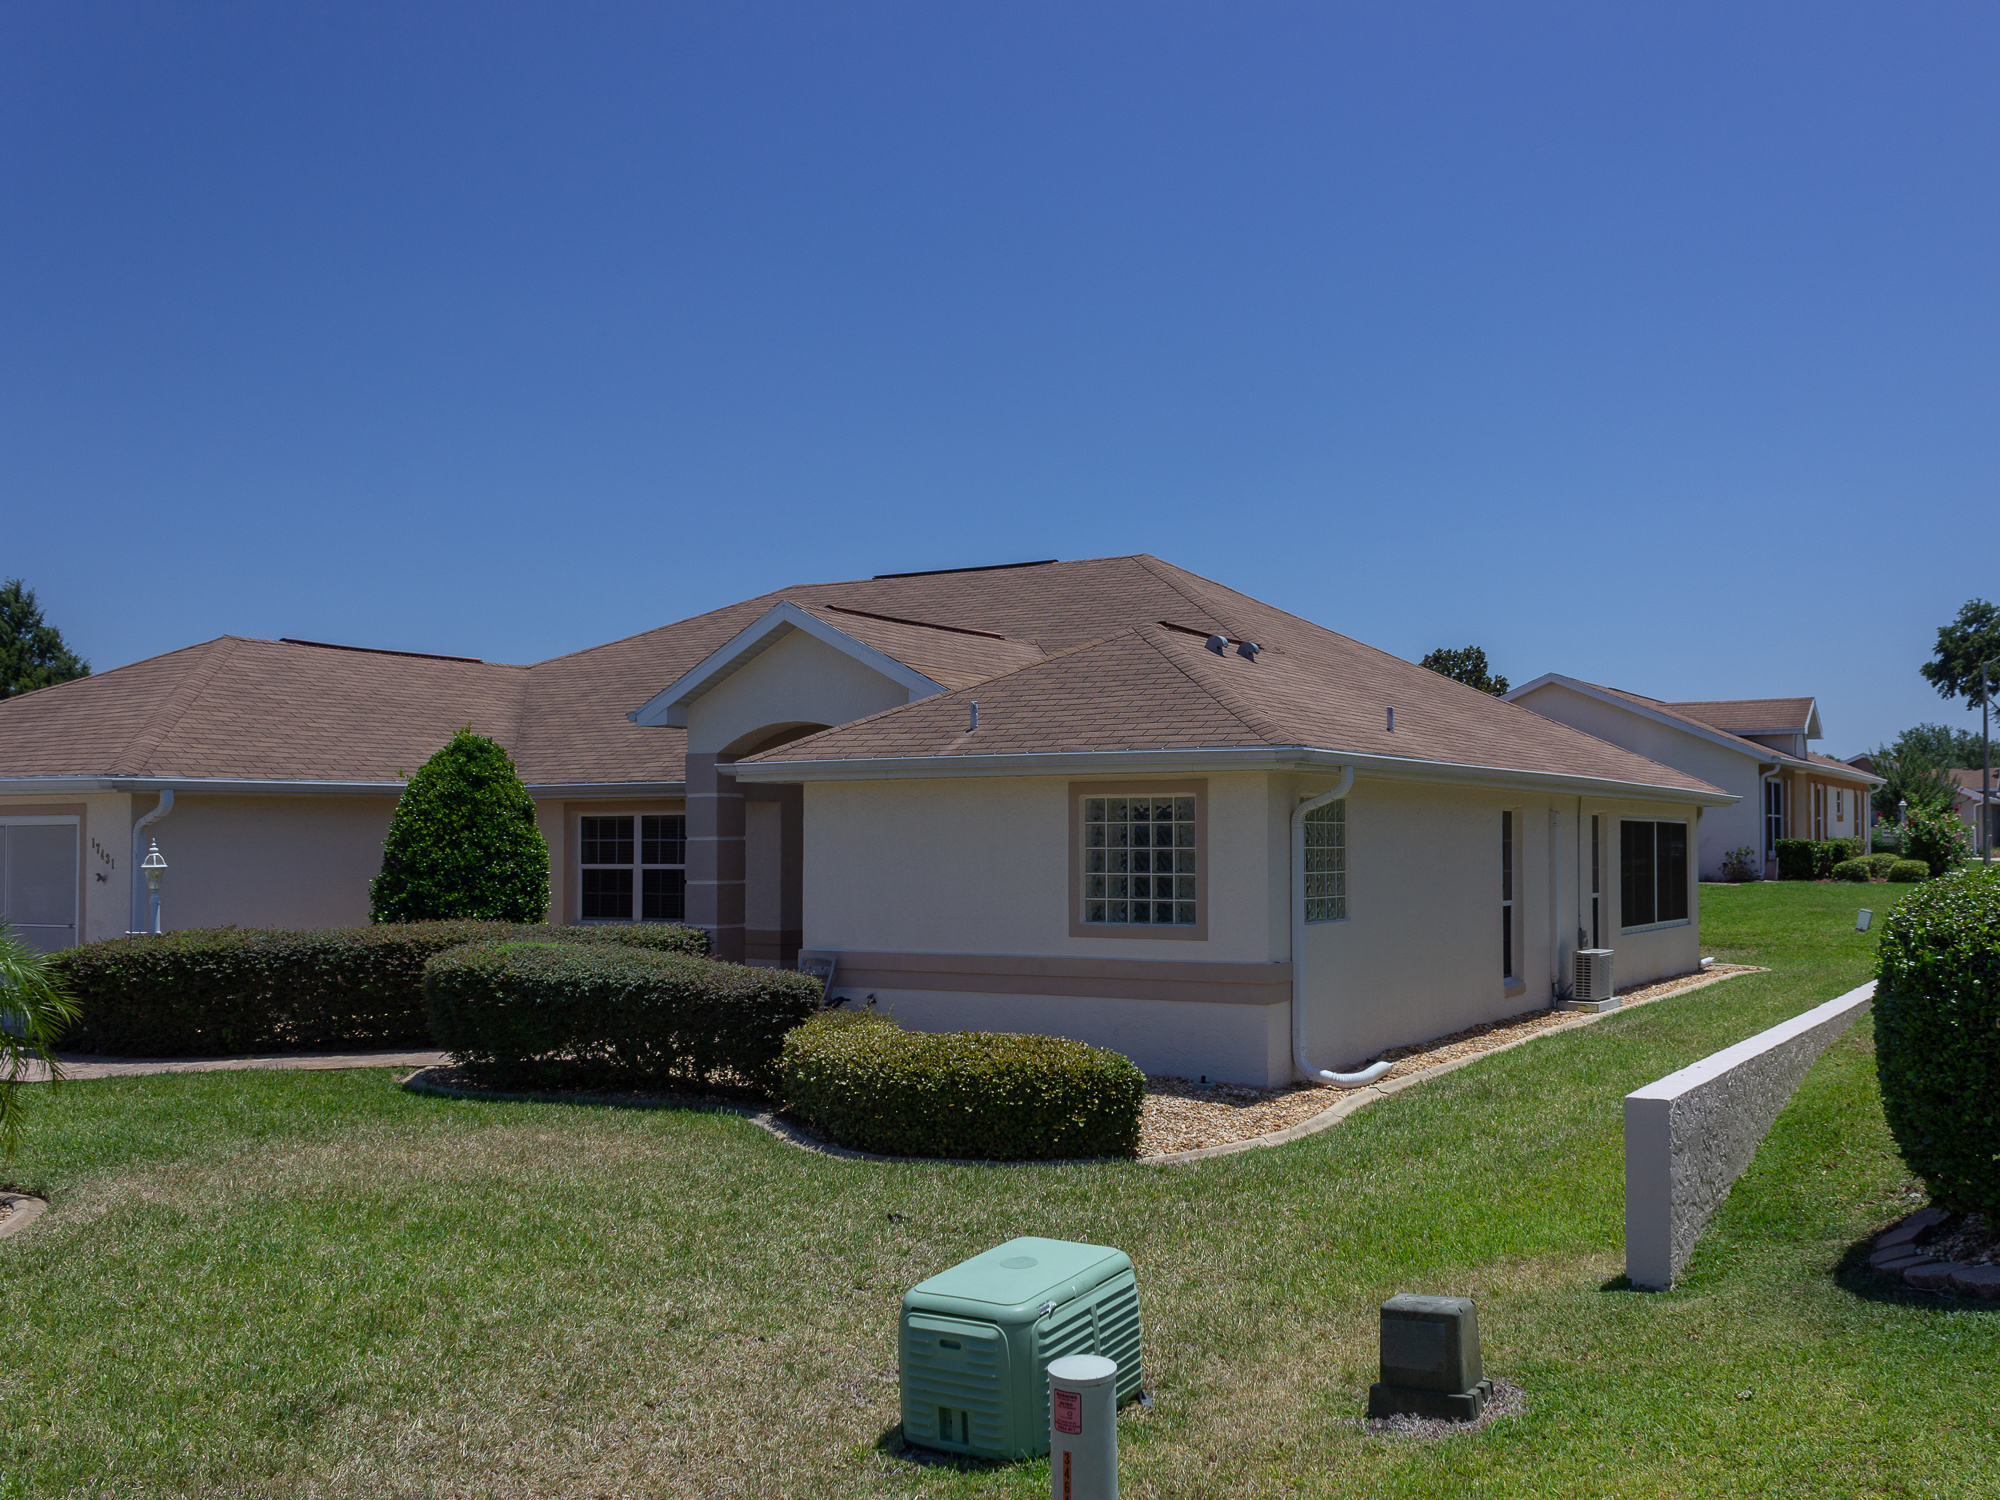 17431-SE-110th-Terrace-Summerfield-FL-34491-101-of-39